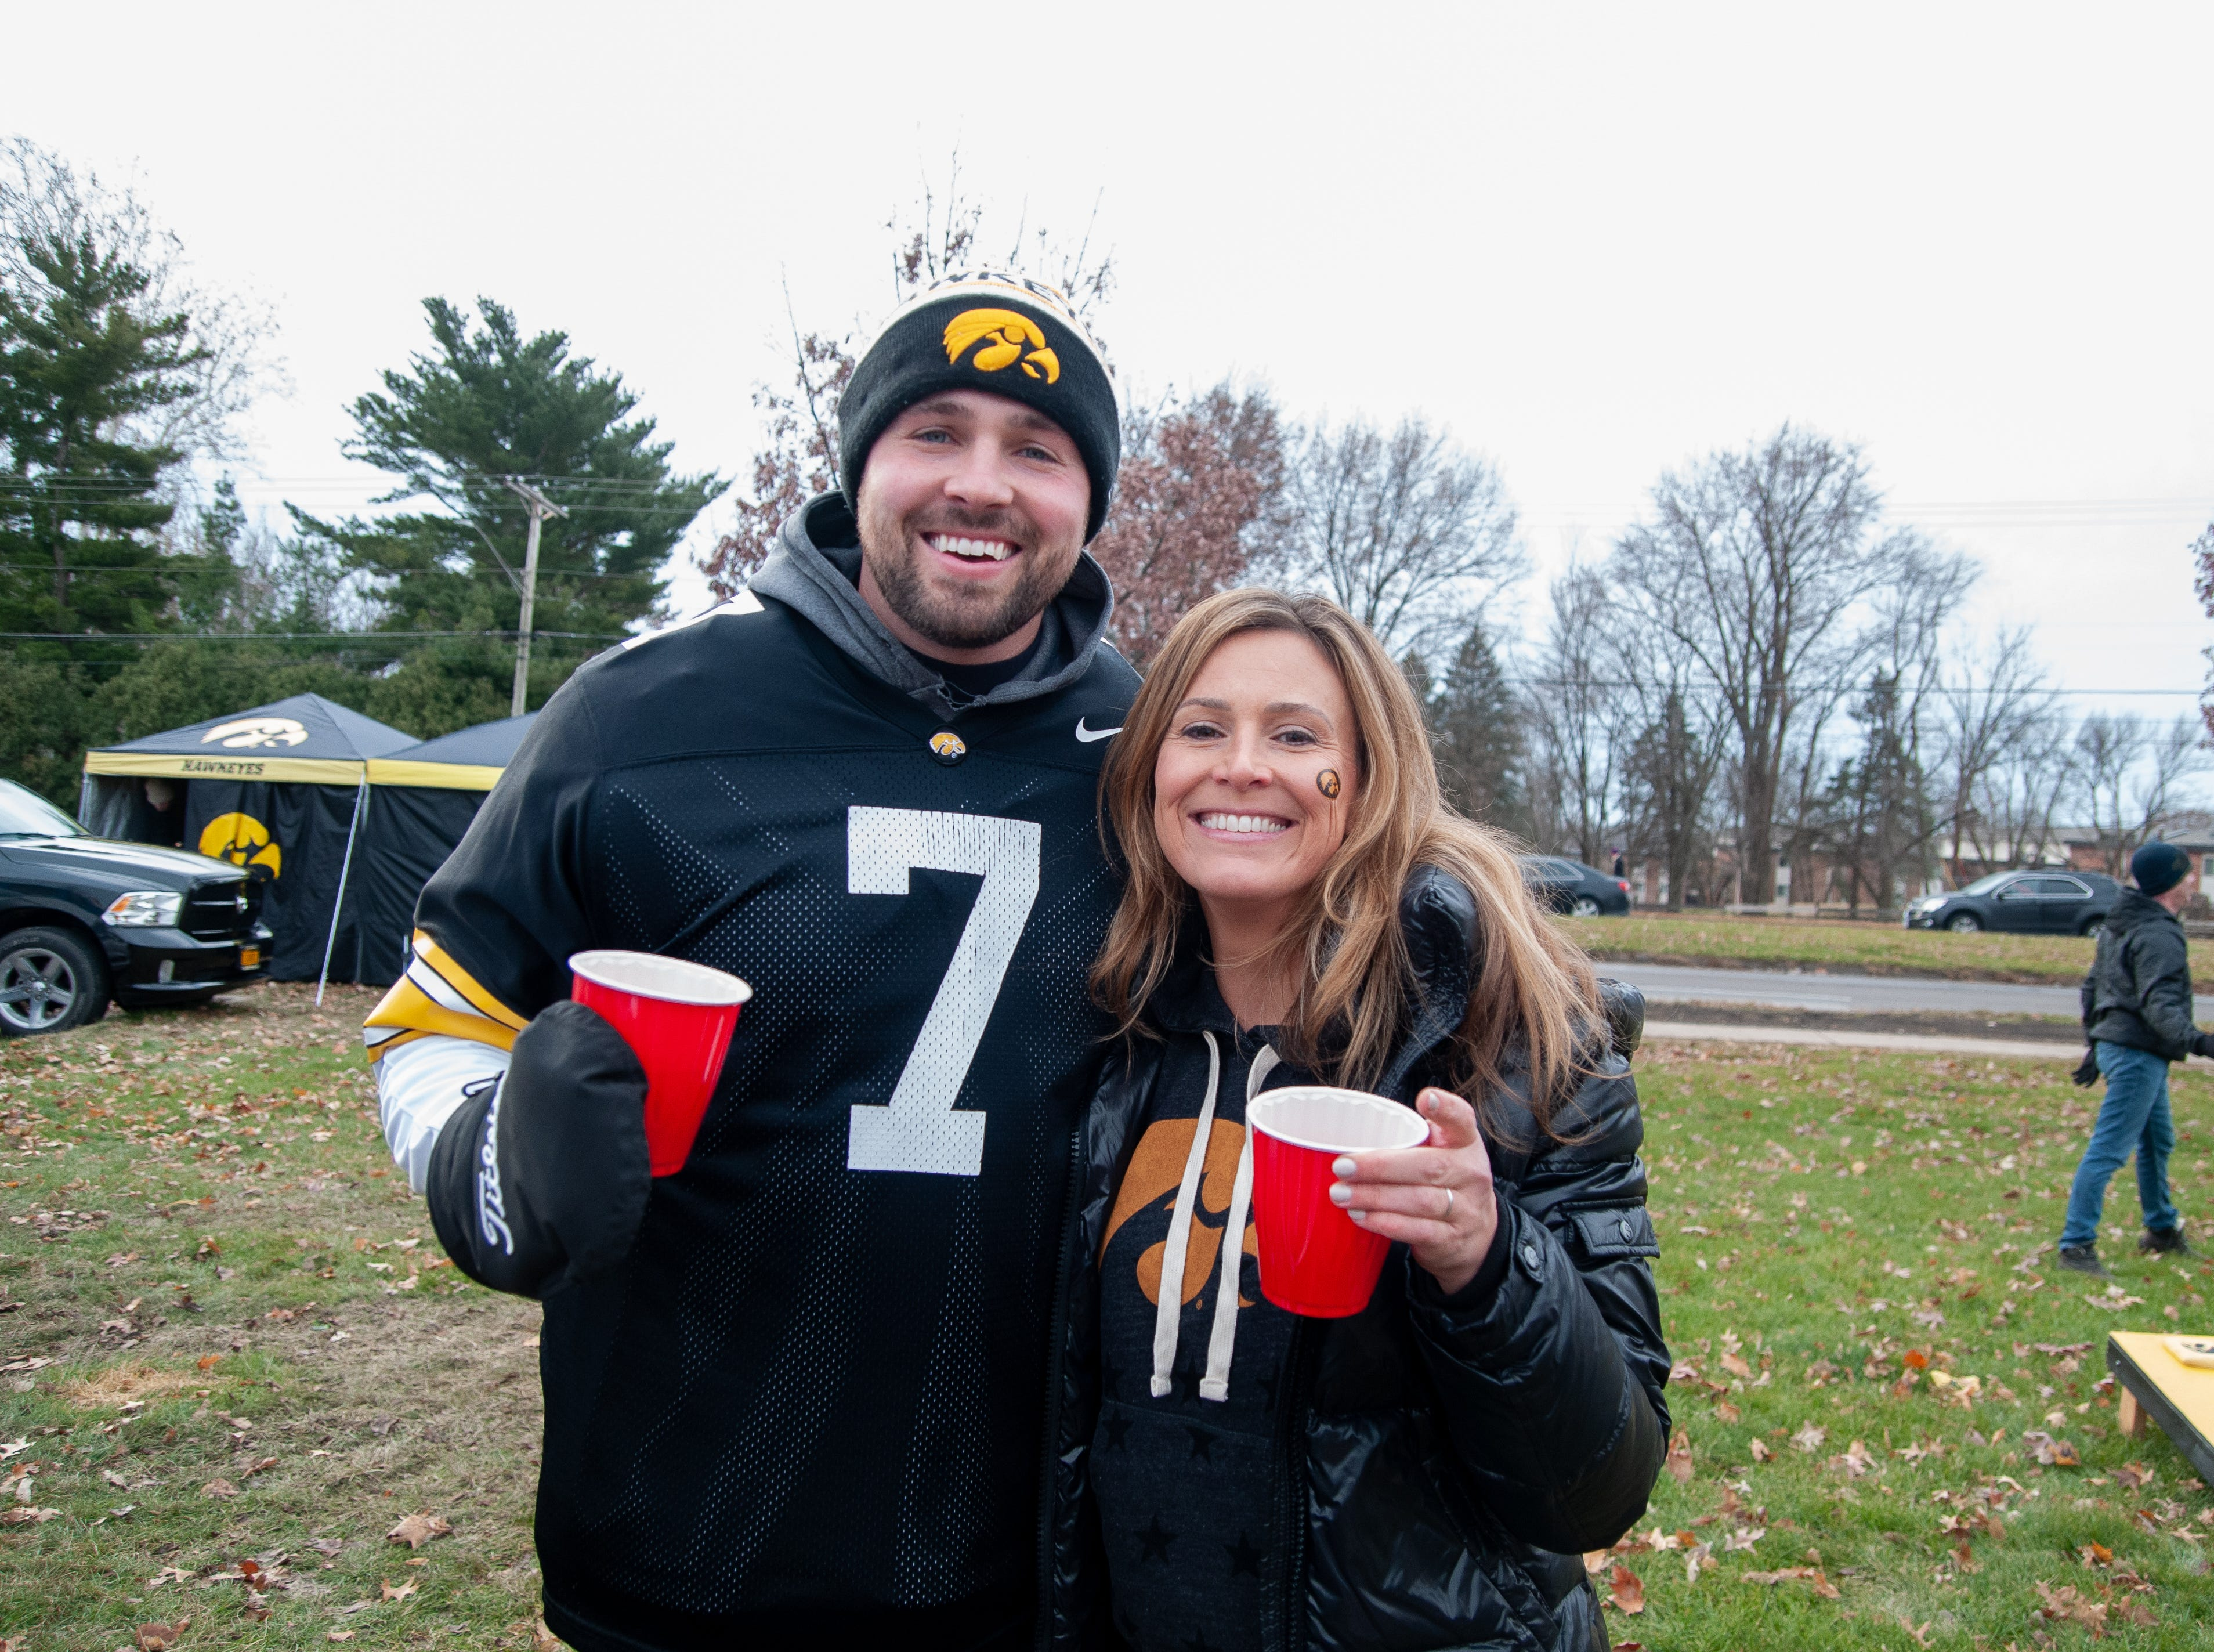 Mike Bisenius, left, and Sarah Mccormick, Friday, Nov. 23, 2018, while tailgating before the Iowa game against Nebraska in Iowa City.